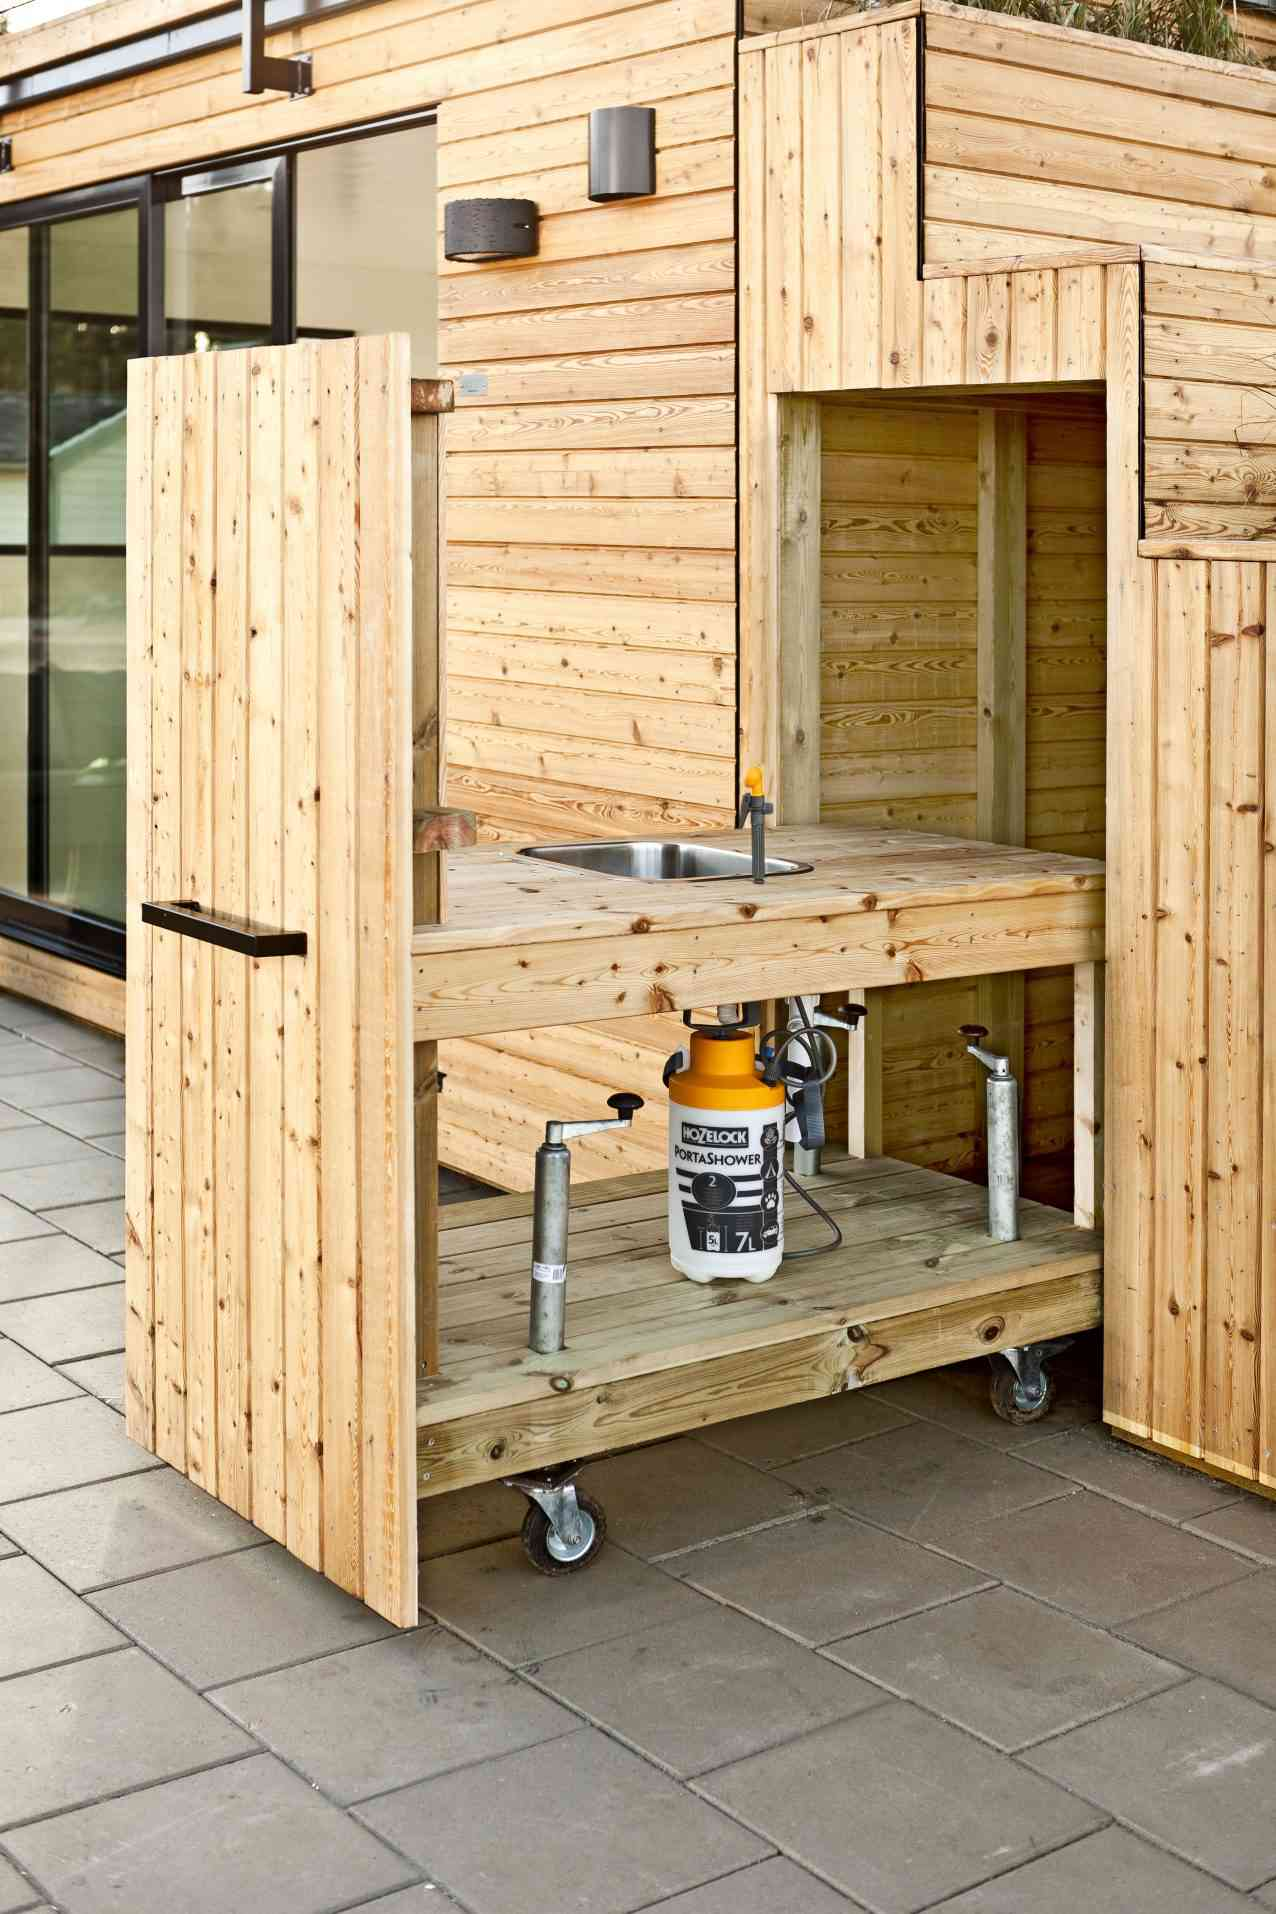 Outdoor kitchen made of wood